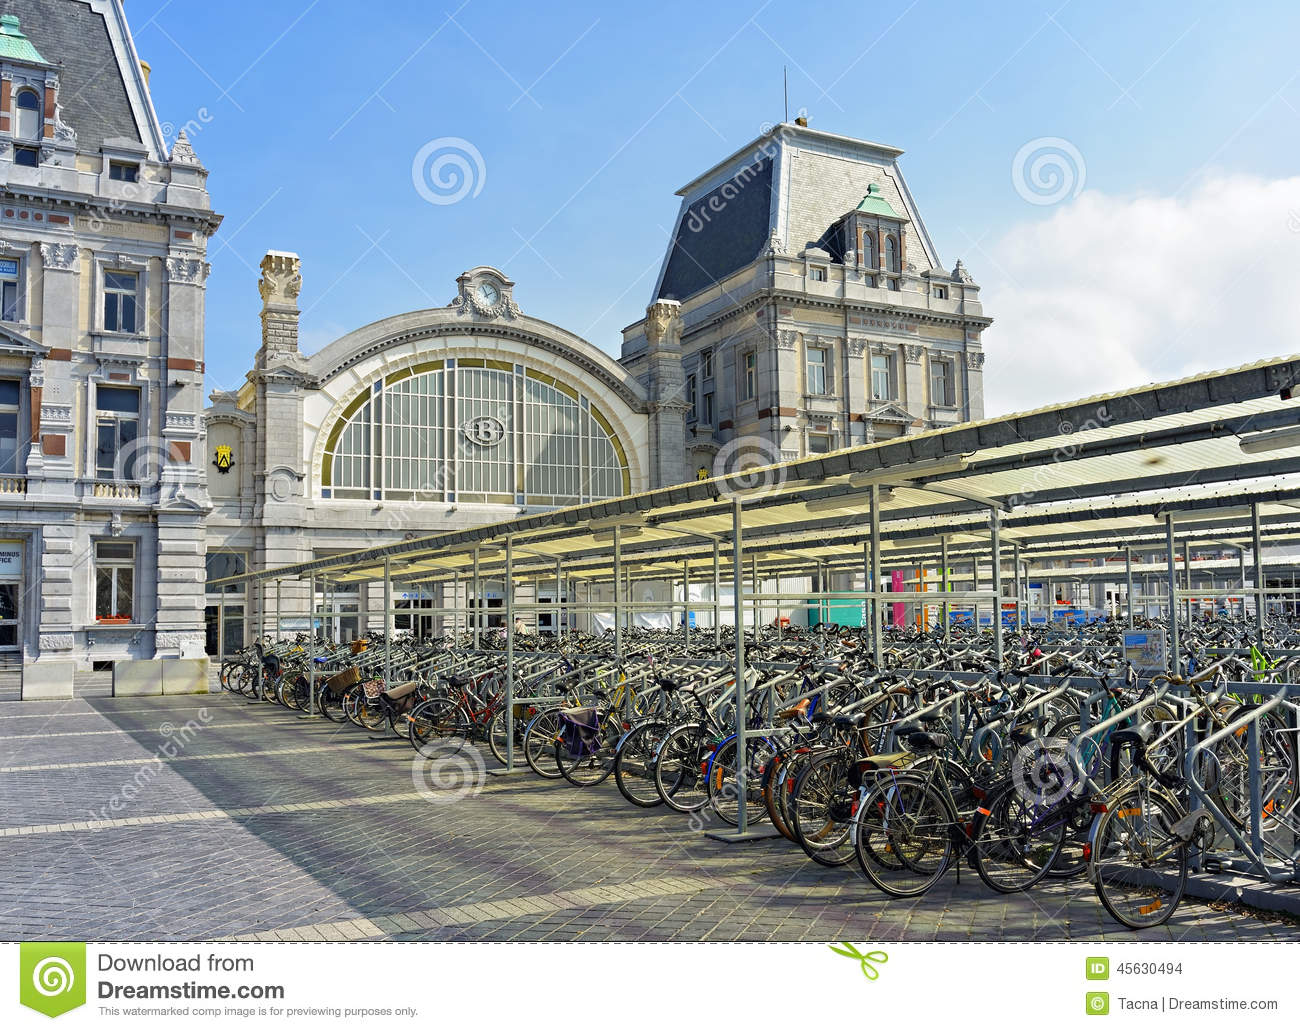 bicycles-front-central-railway-station-ostend-belgium-september-was-built-currently-under-45630494